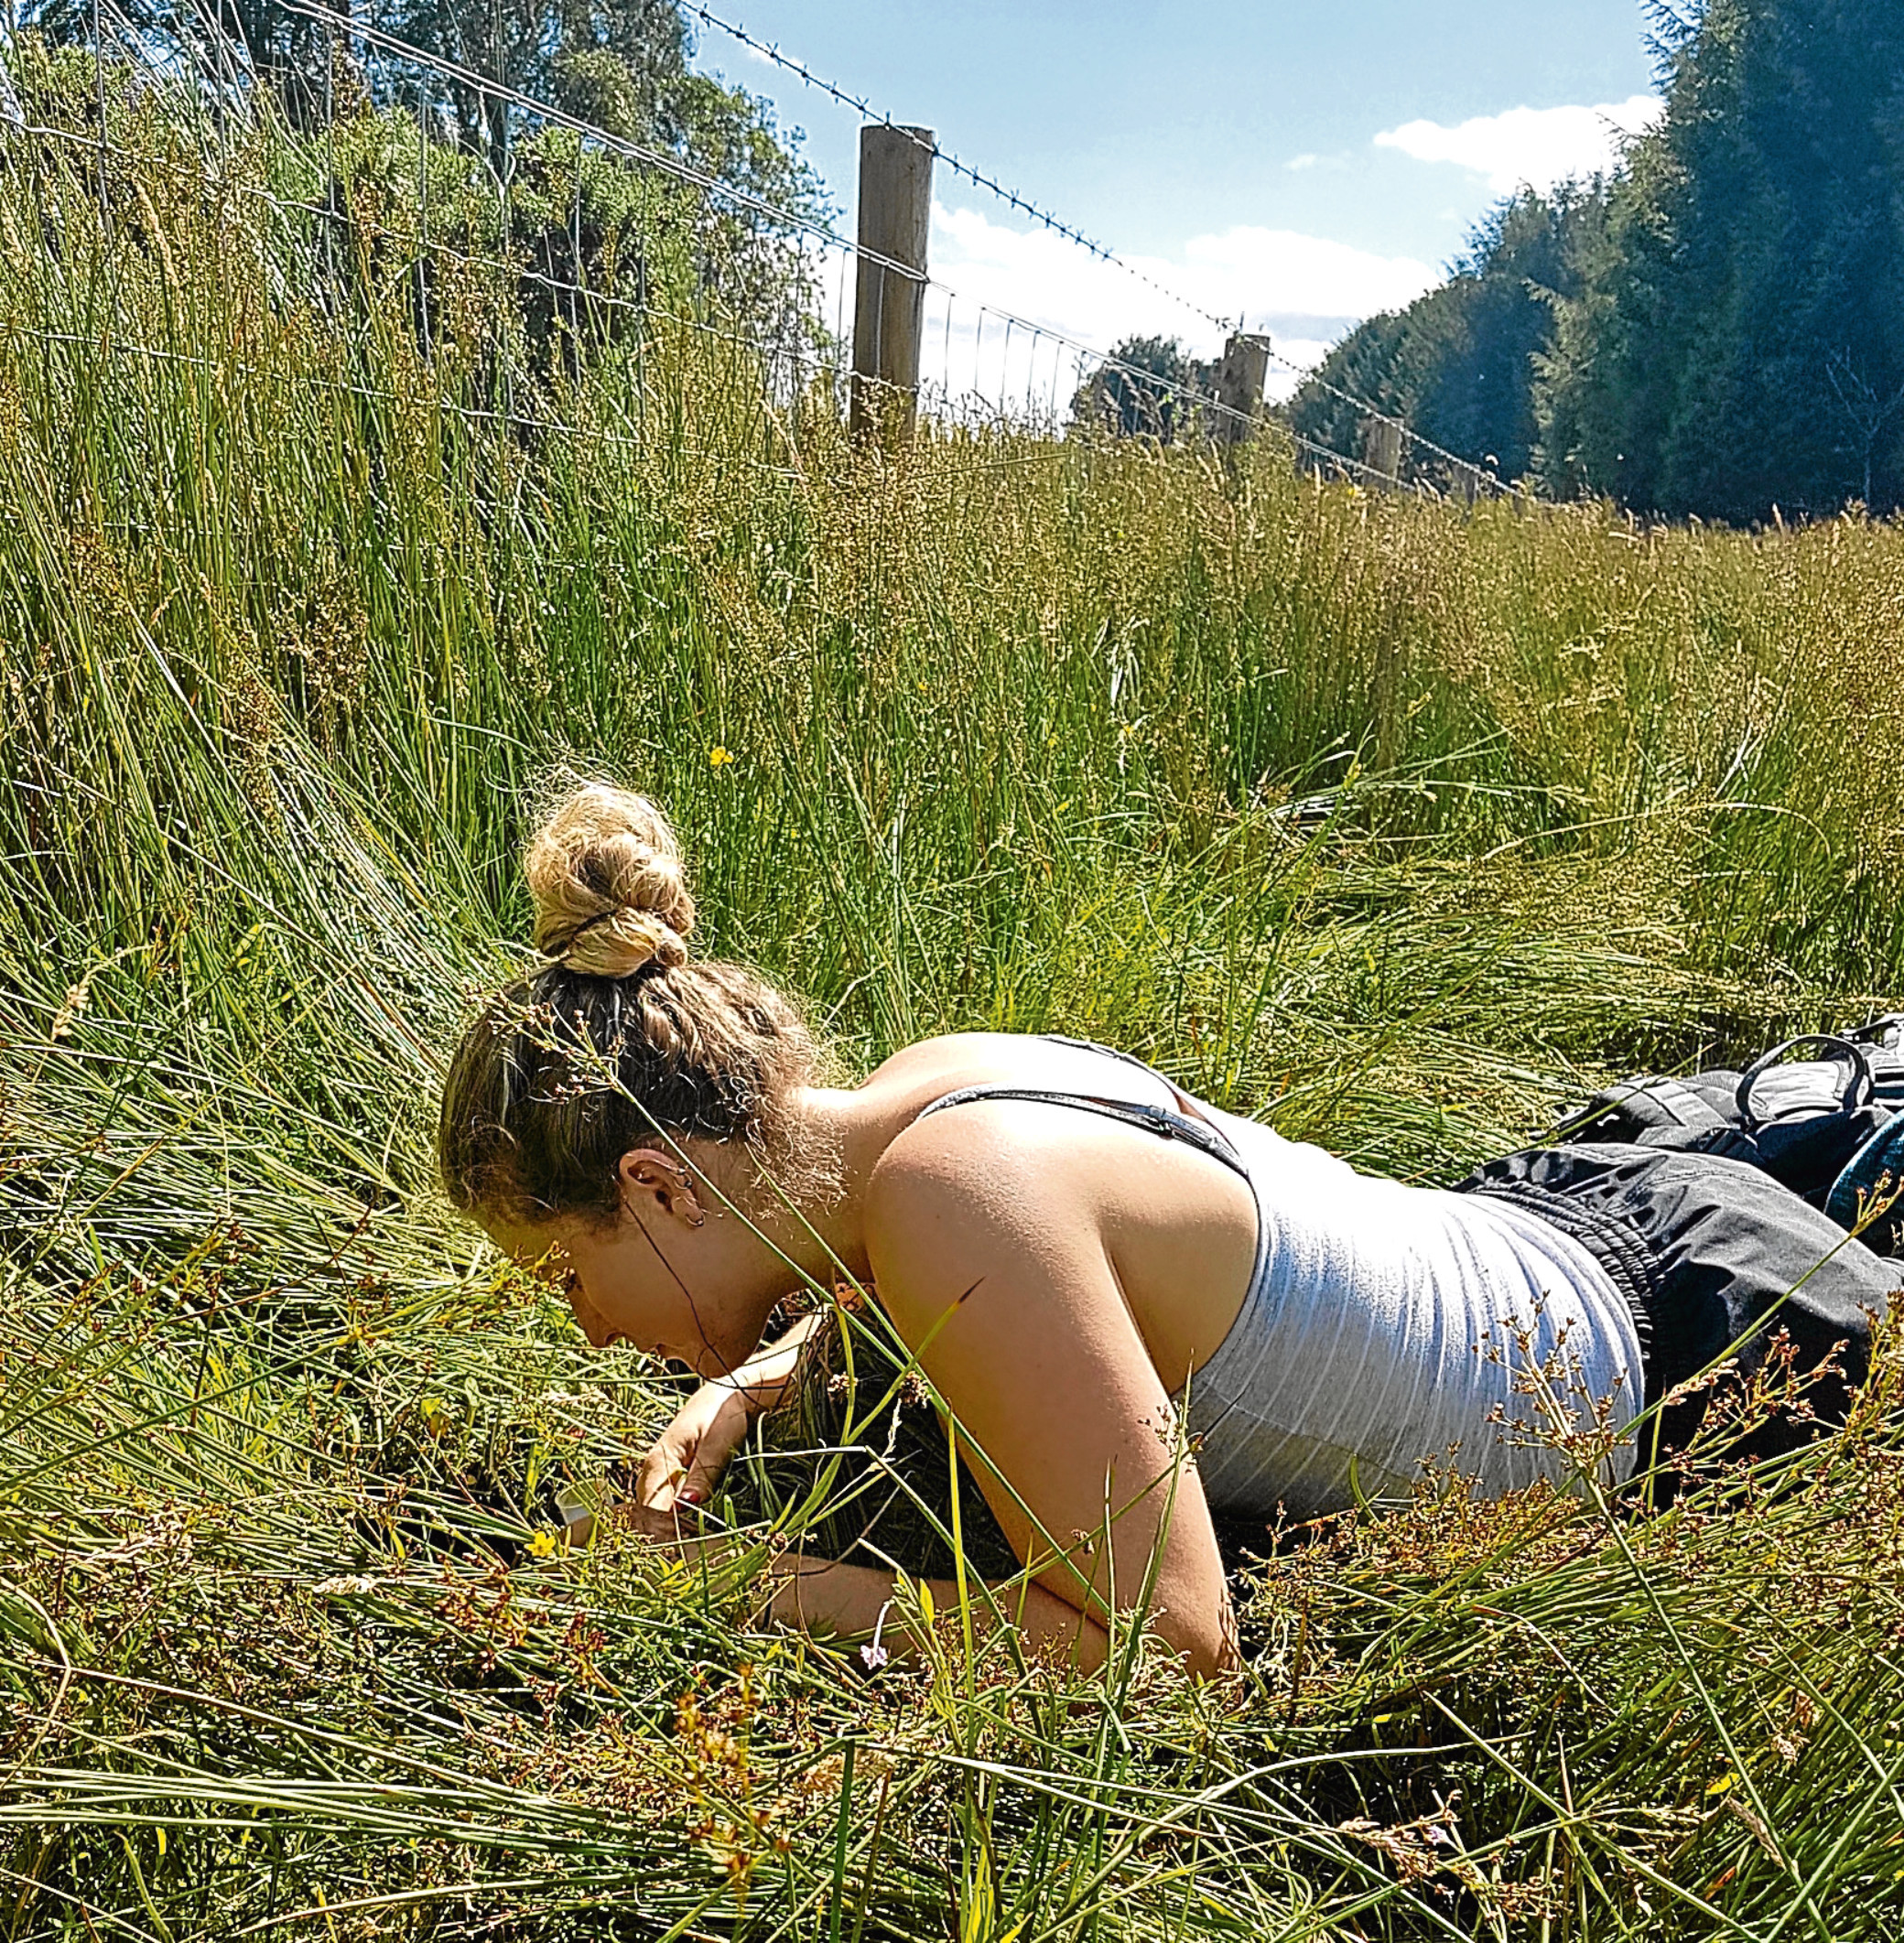 Research assistant Marlies Nicolai hunting for mud snails.